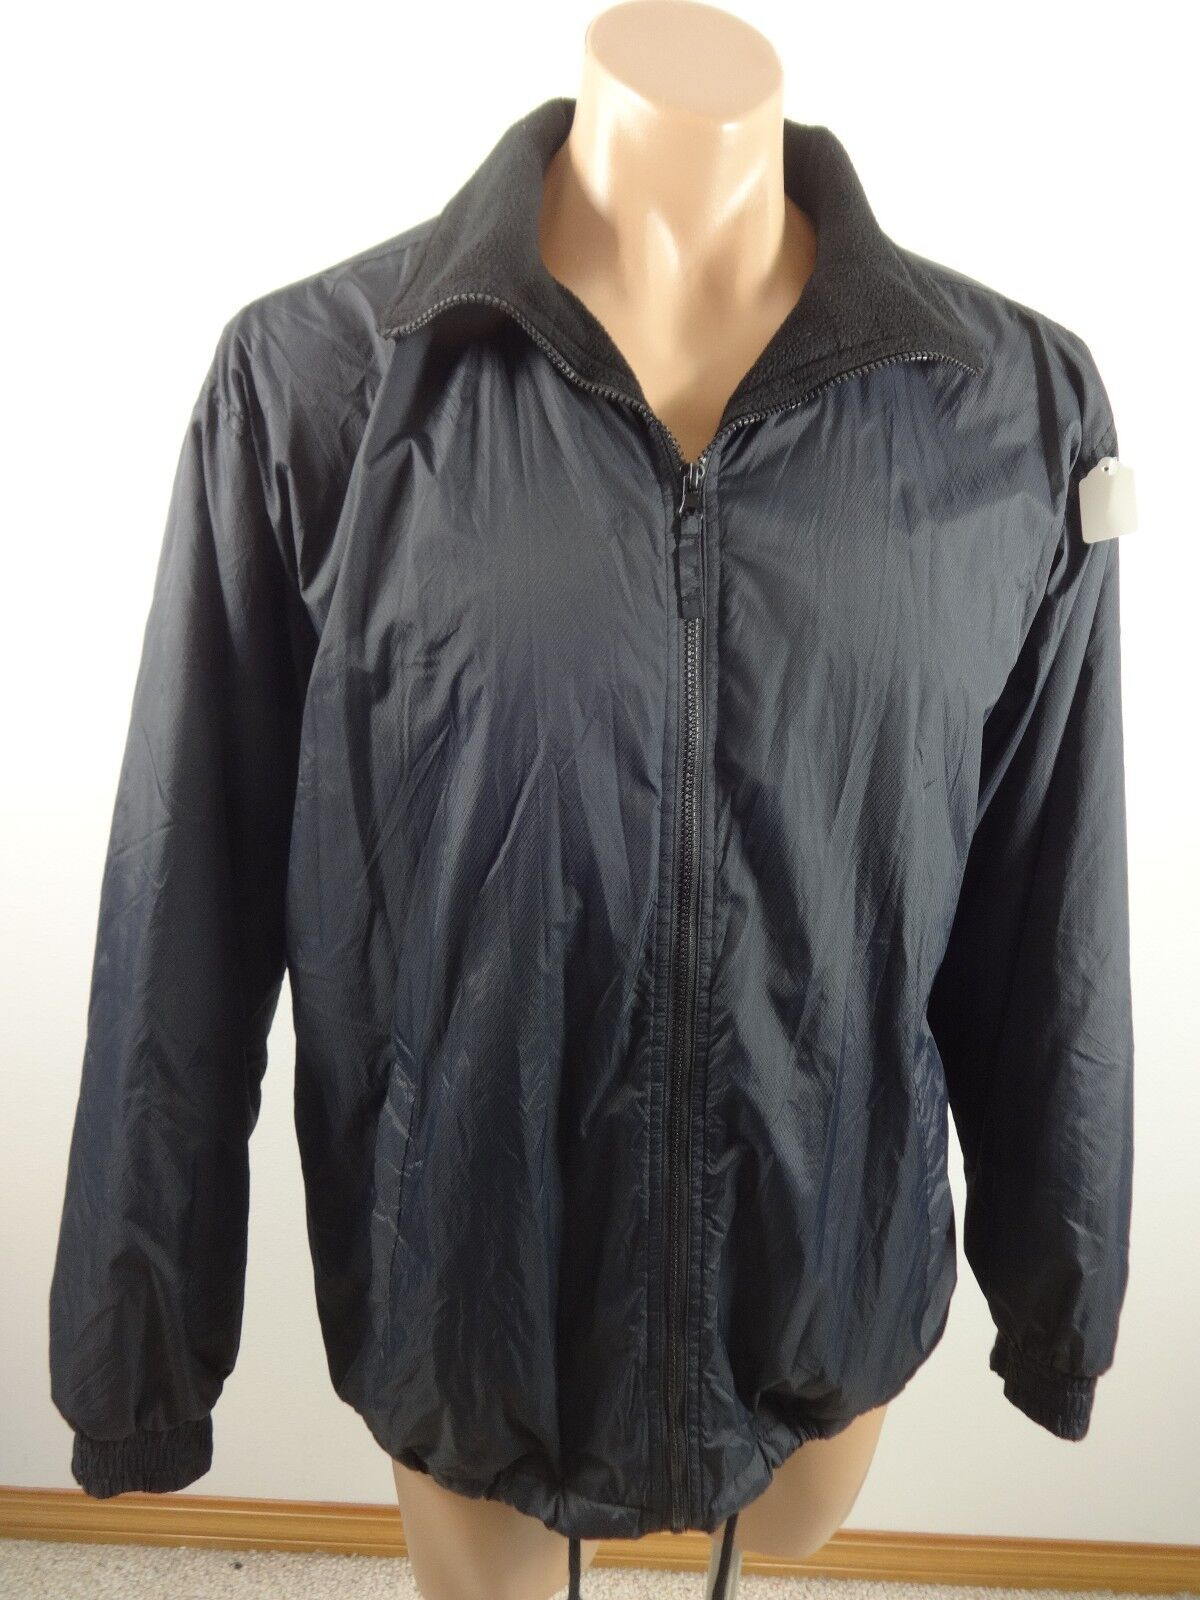 bec6a2b66a4 Details about SPORT ESSENTIALS MENS BLACK NYLON JACKET WITH FLEECE LINING  SIZE M